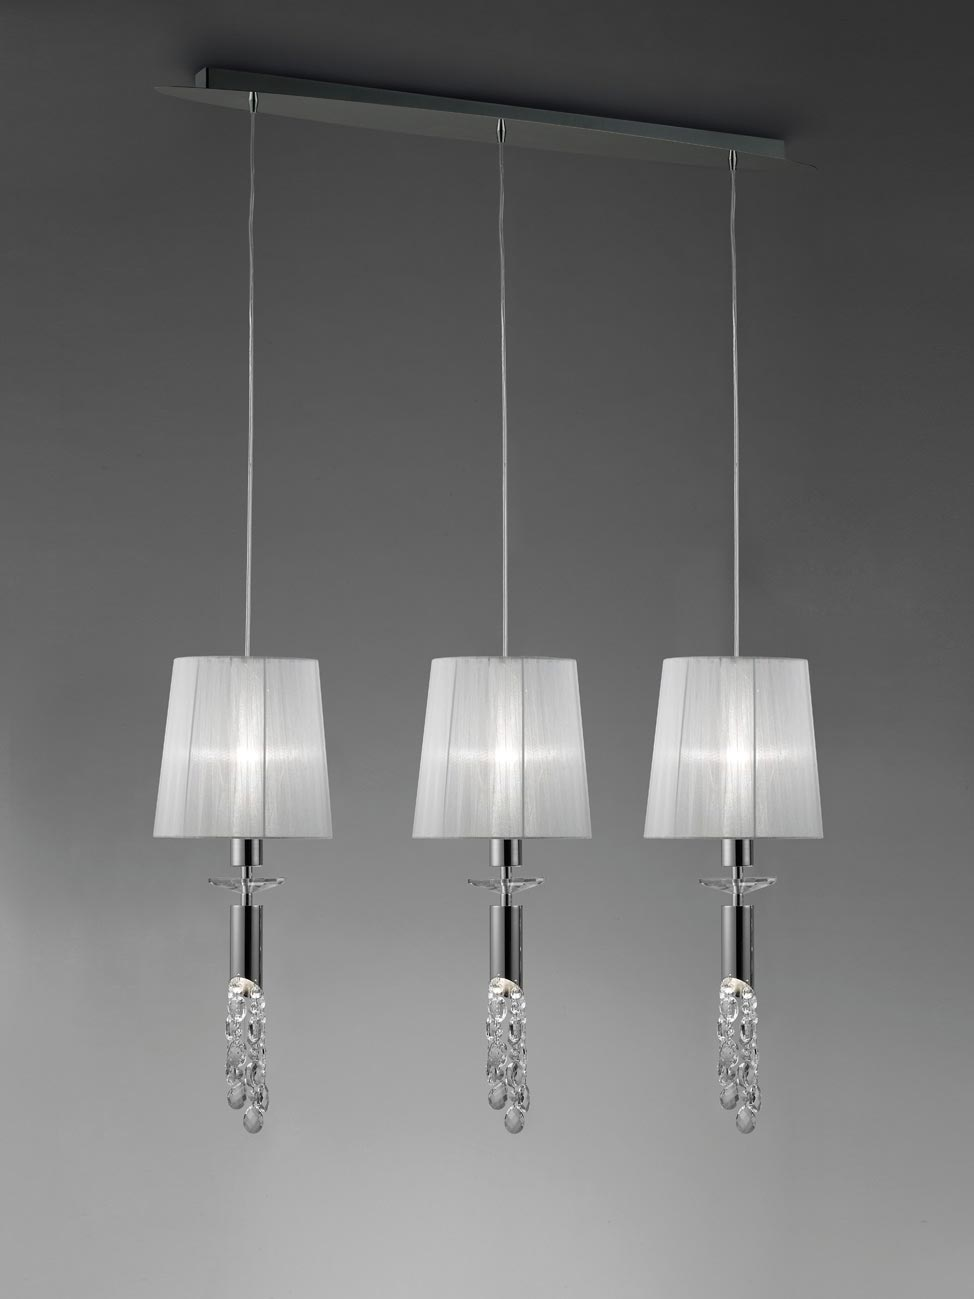 Colgante lineal cromo TIFFANY 3+3 luces